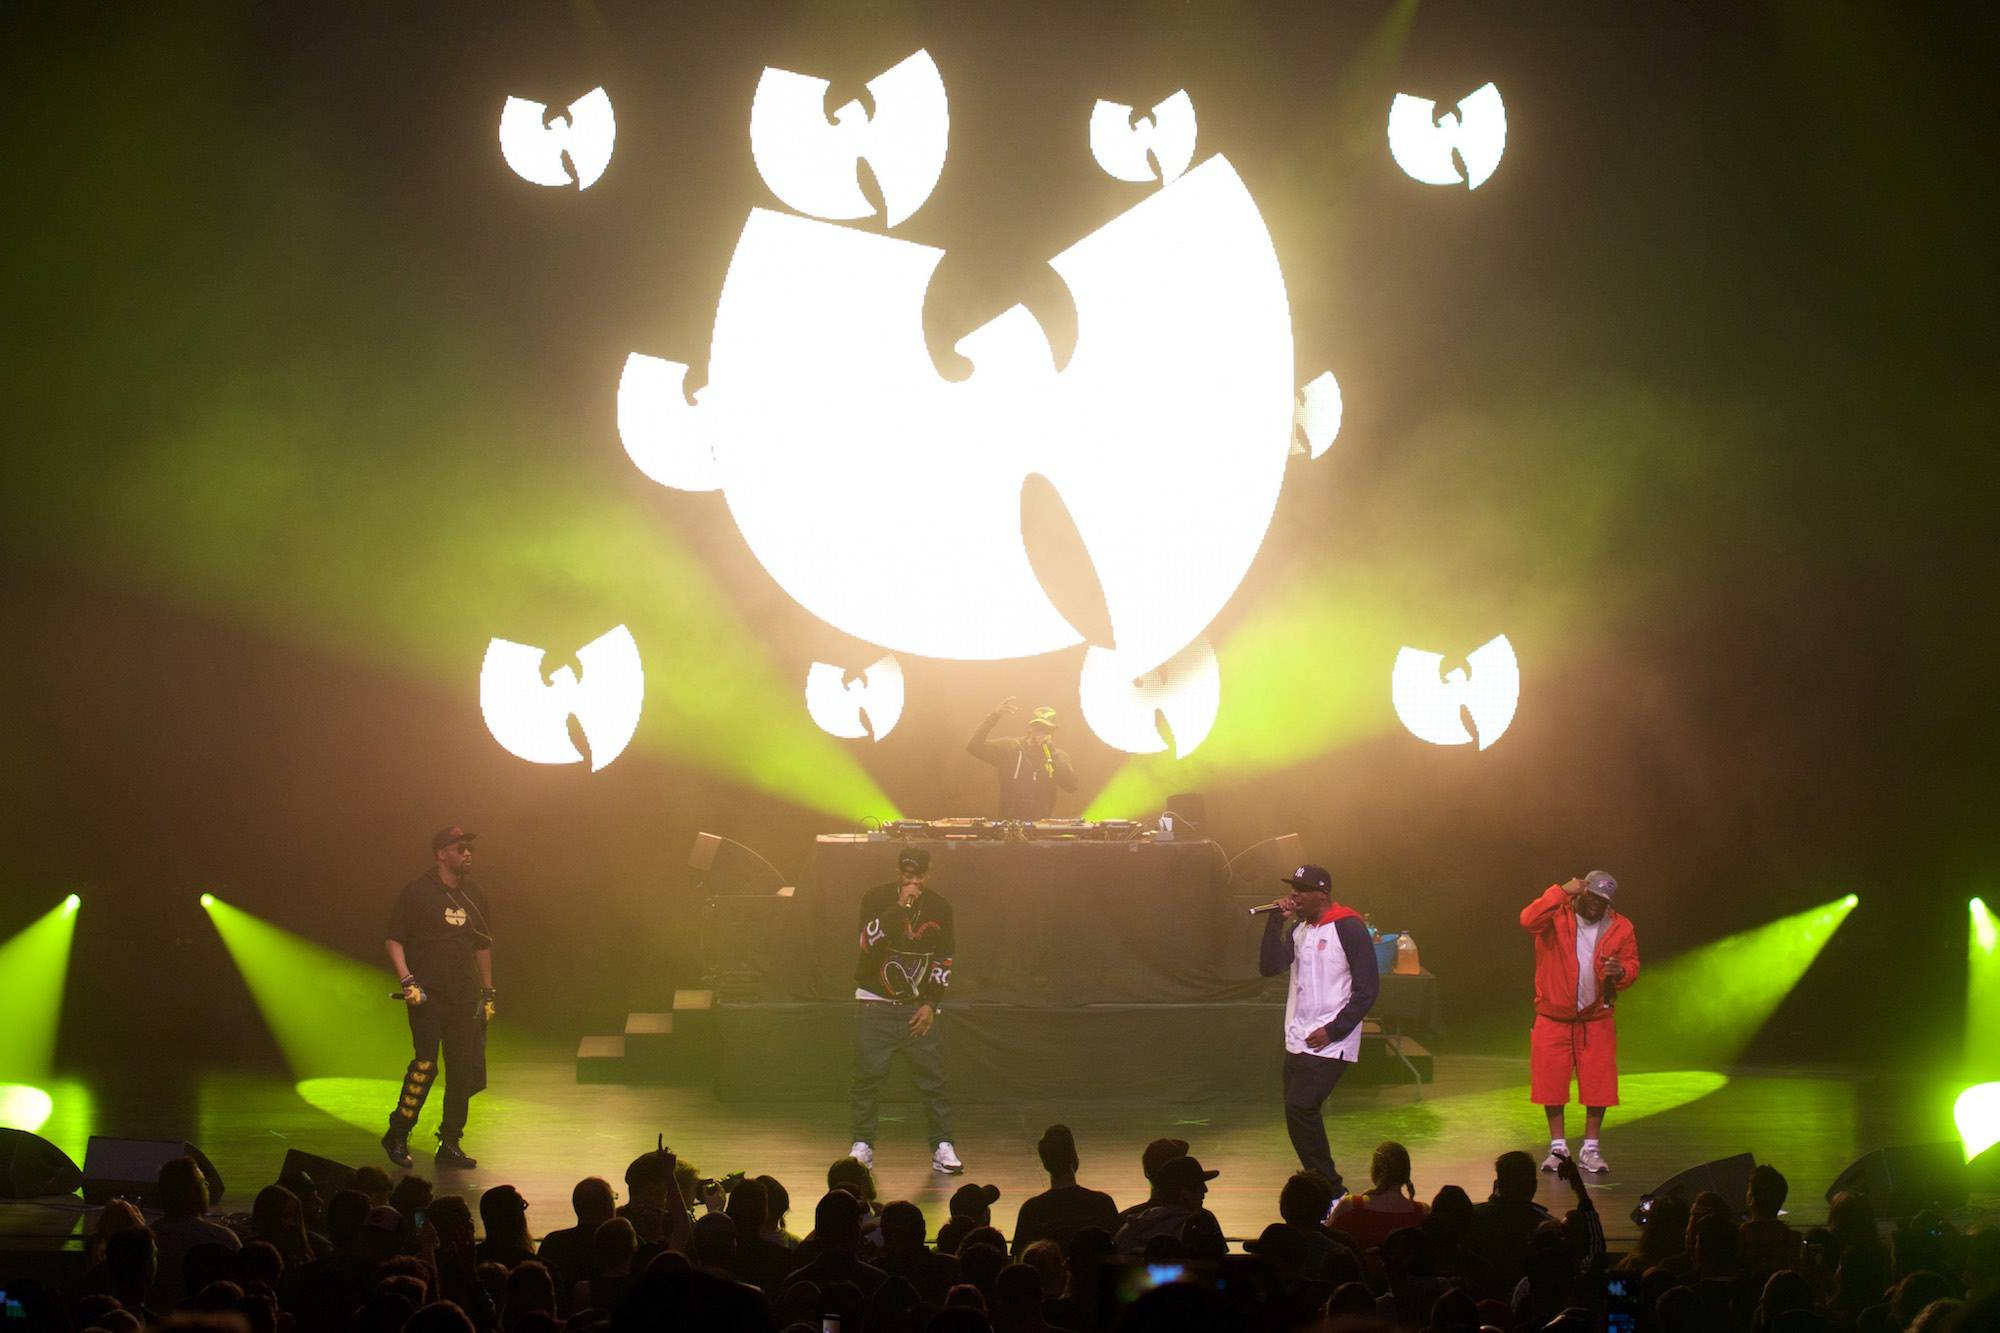 TD Vancouver International Jazz Fest Presents: Wu Tang Clan at the Queen Elizabeth Theatre, Vancouver, Jun 23 2019. Scott Alexander photo.